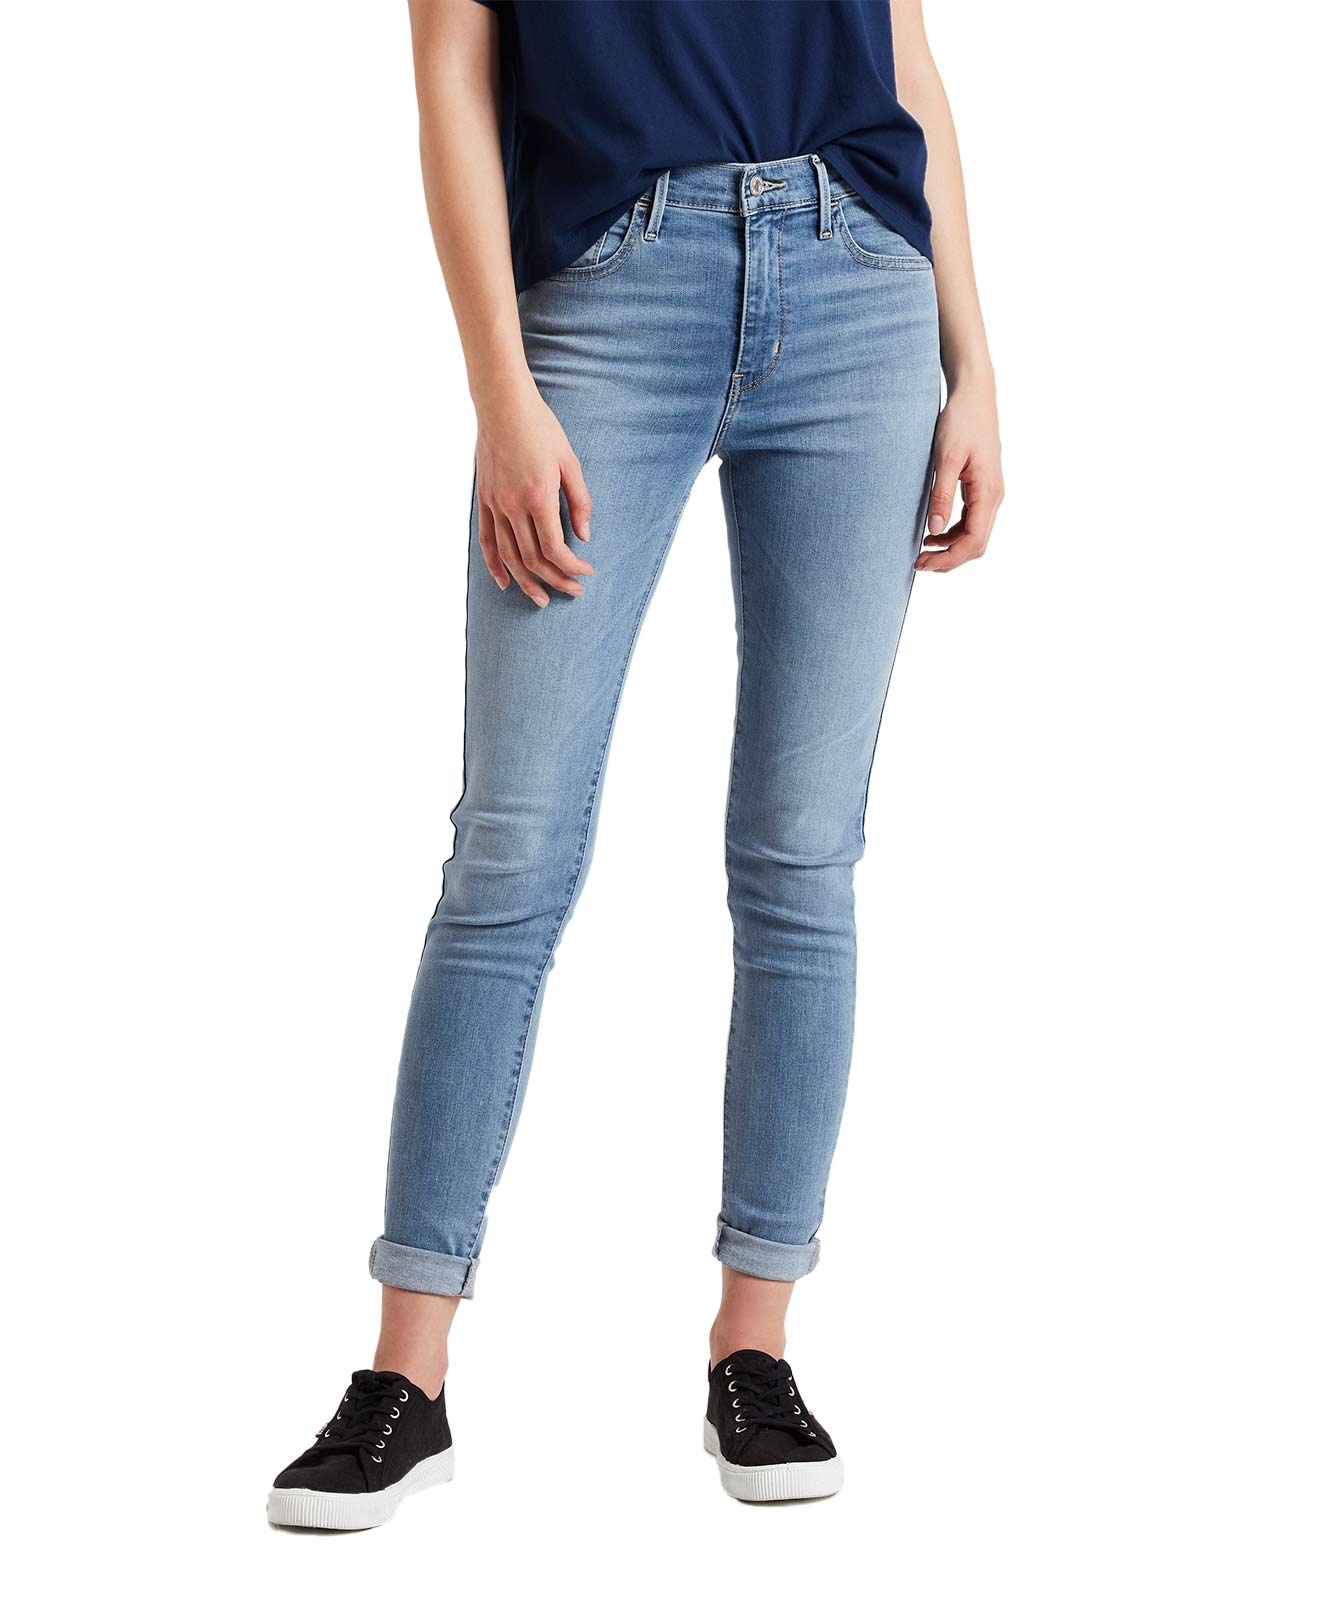 Hosen - Levis 720 Hellblaue High Waisted Skinny Jeans  - Onlineshop Jeans Meile